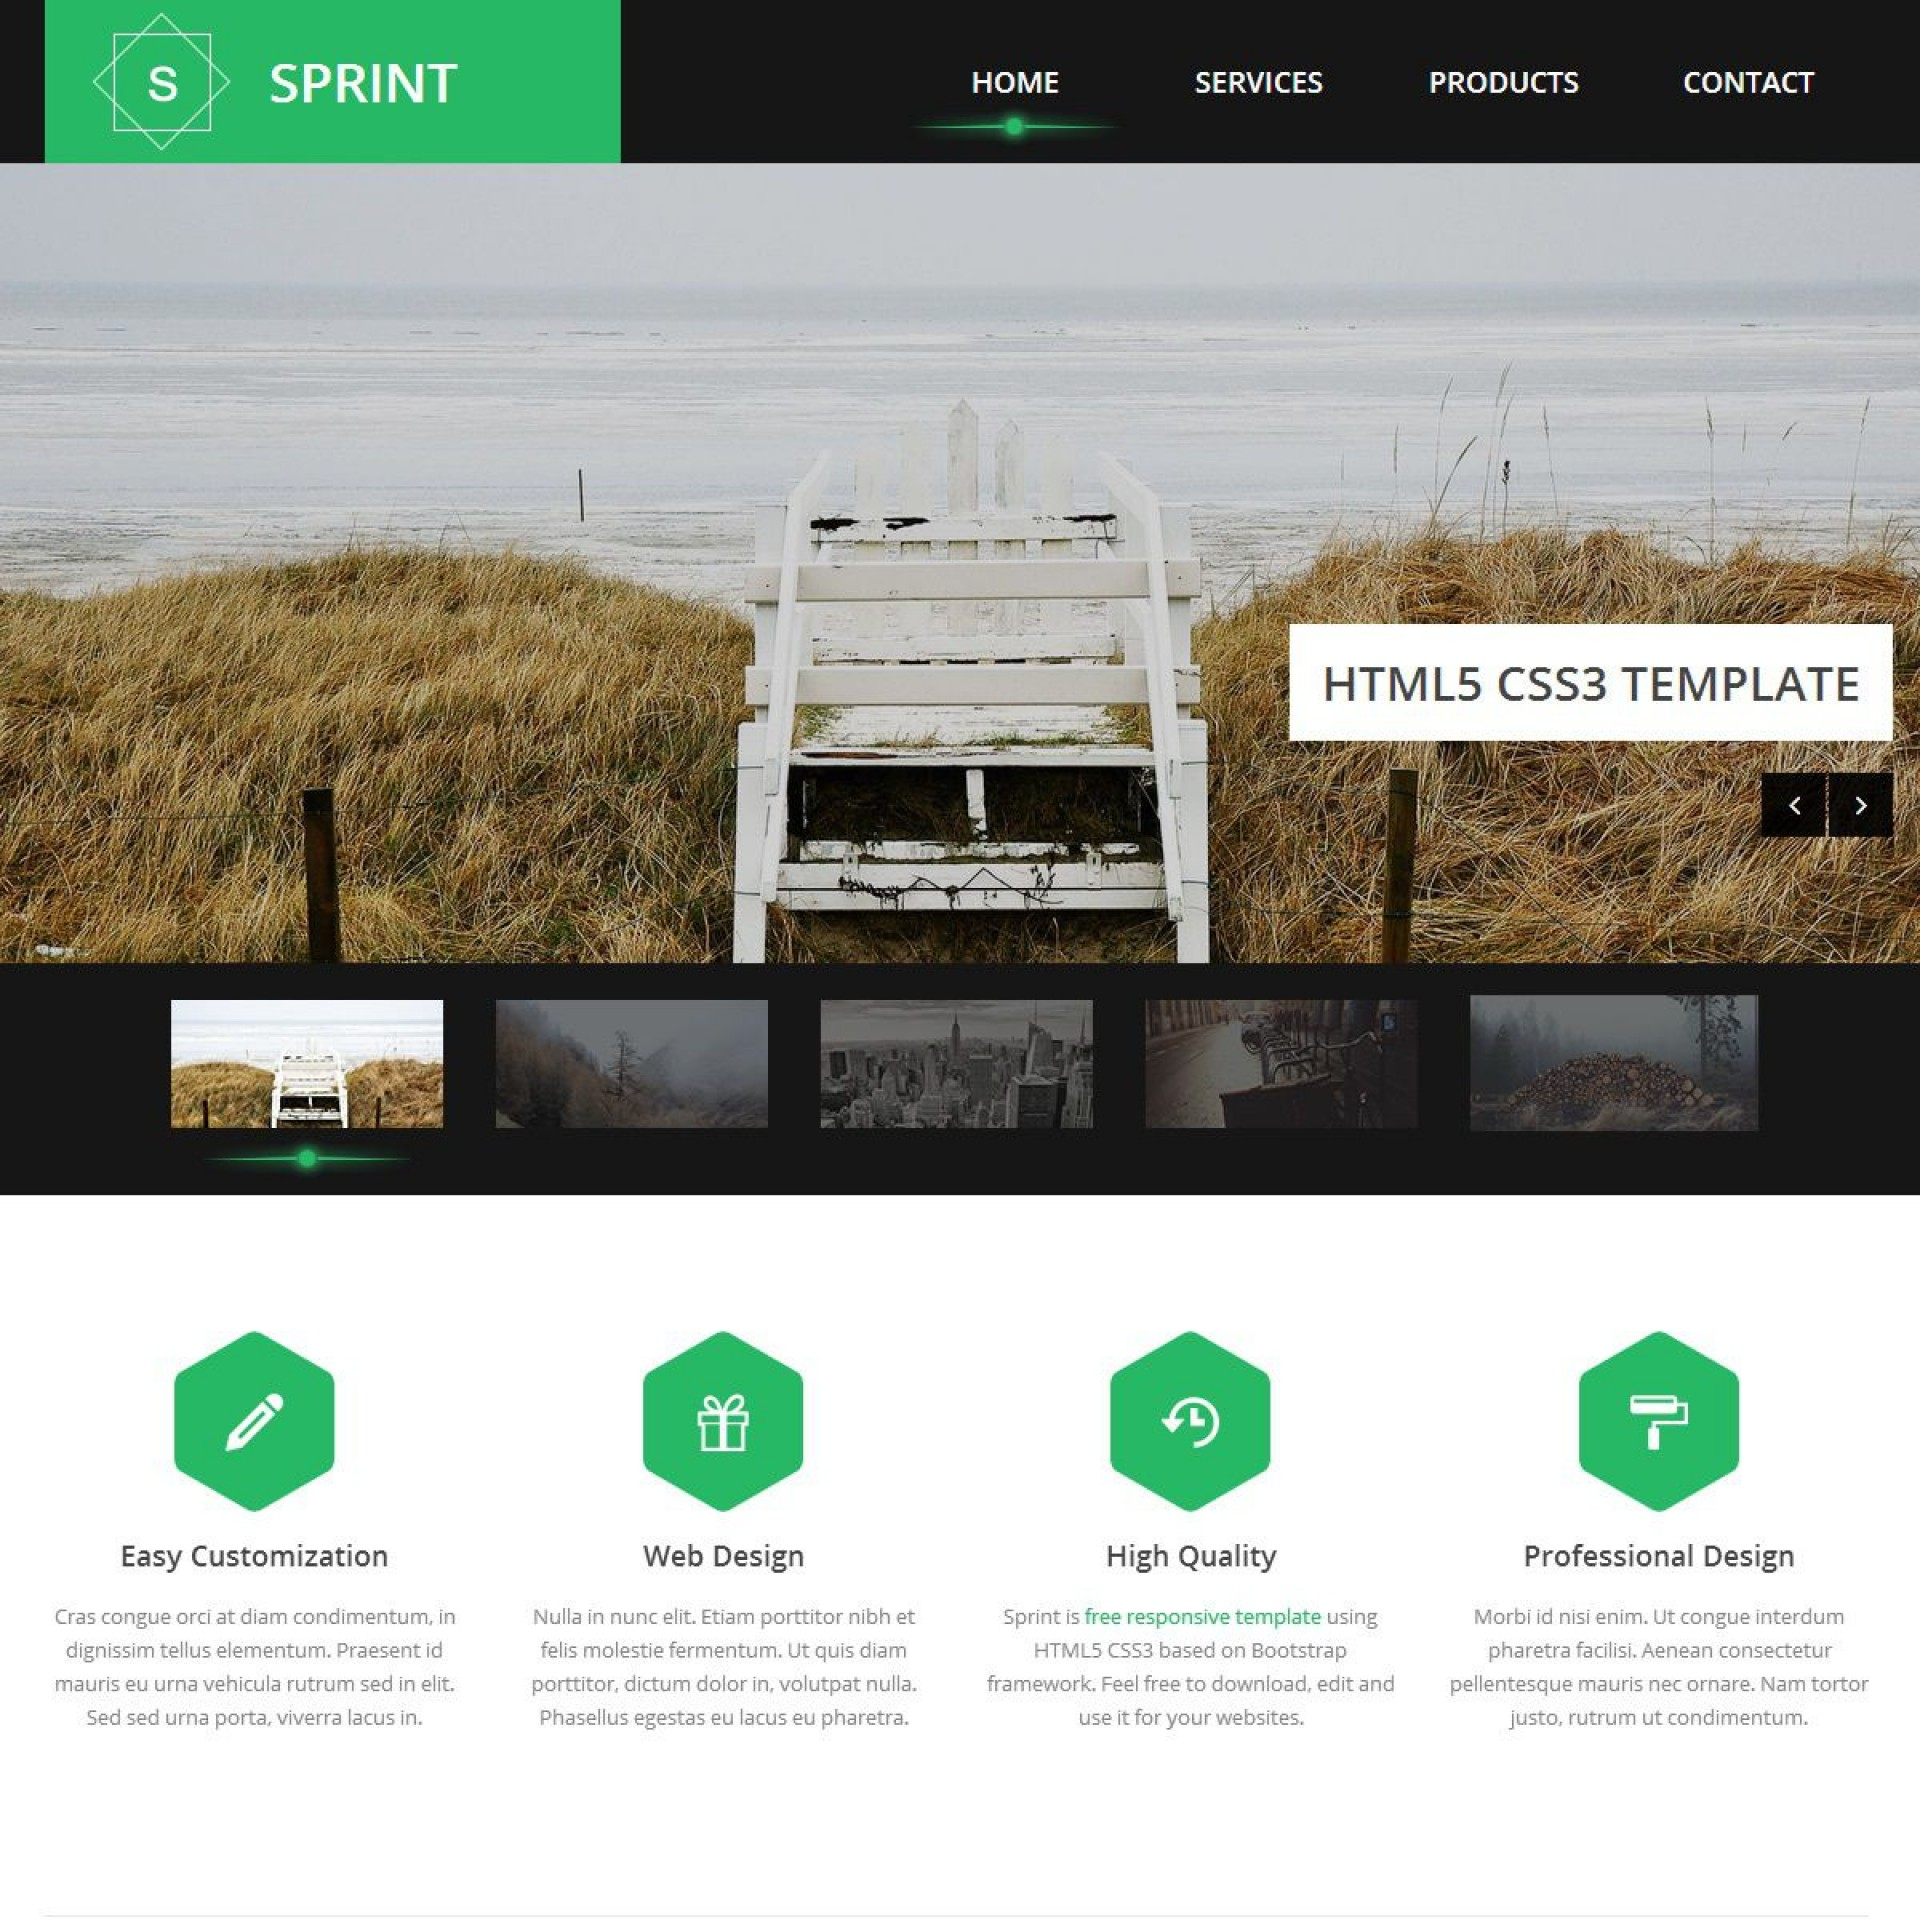 009 Amazing Website Template Html Cs Free Download Picture  Registration Page With Javascript Jquery Responsive Student Form1920